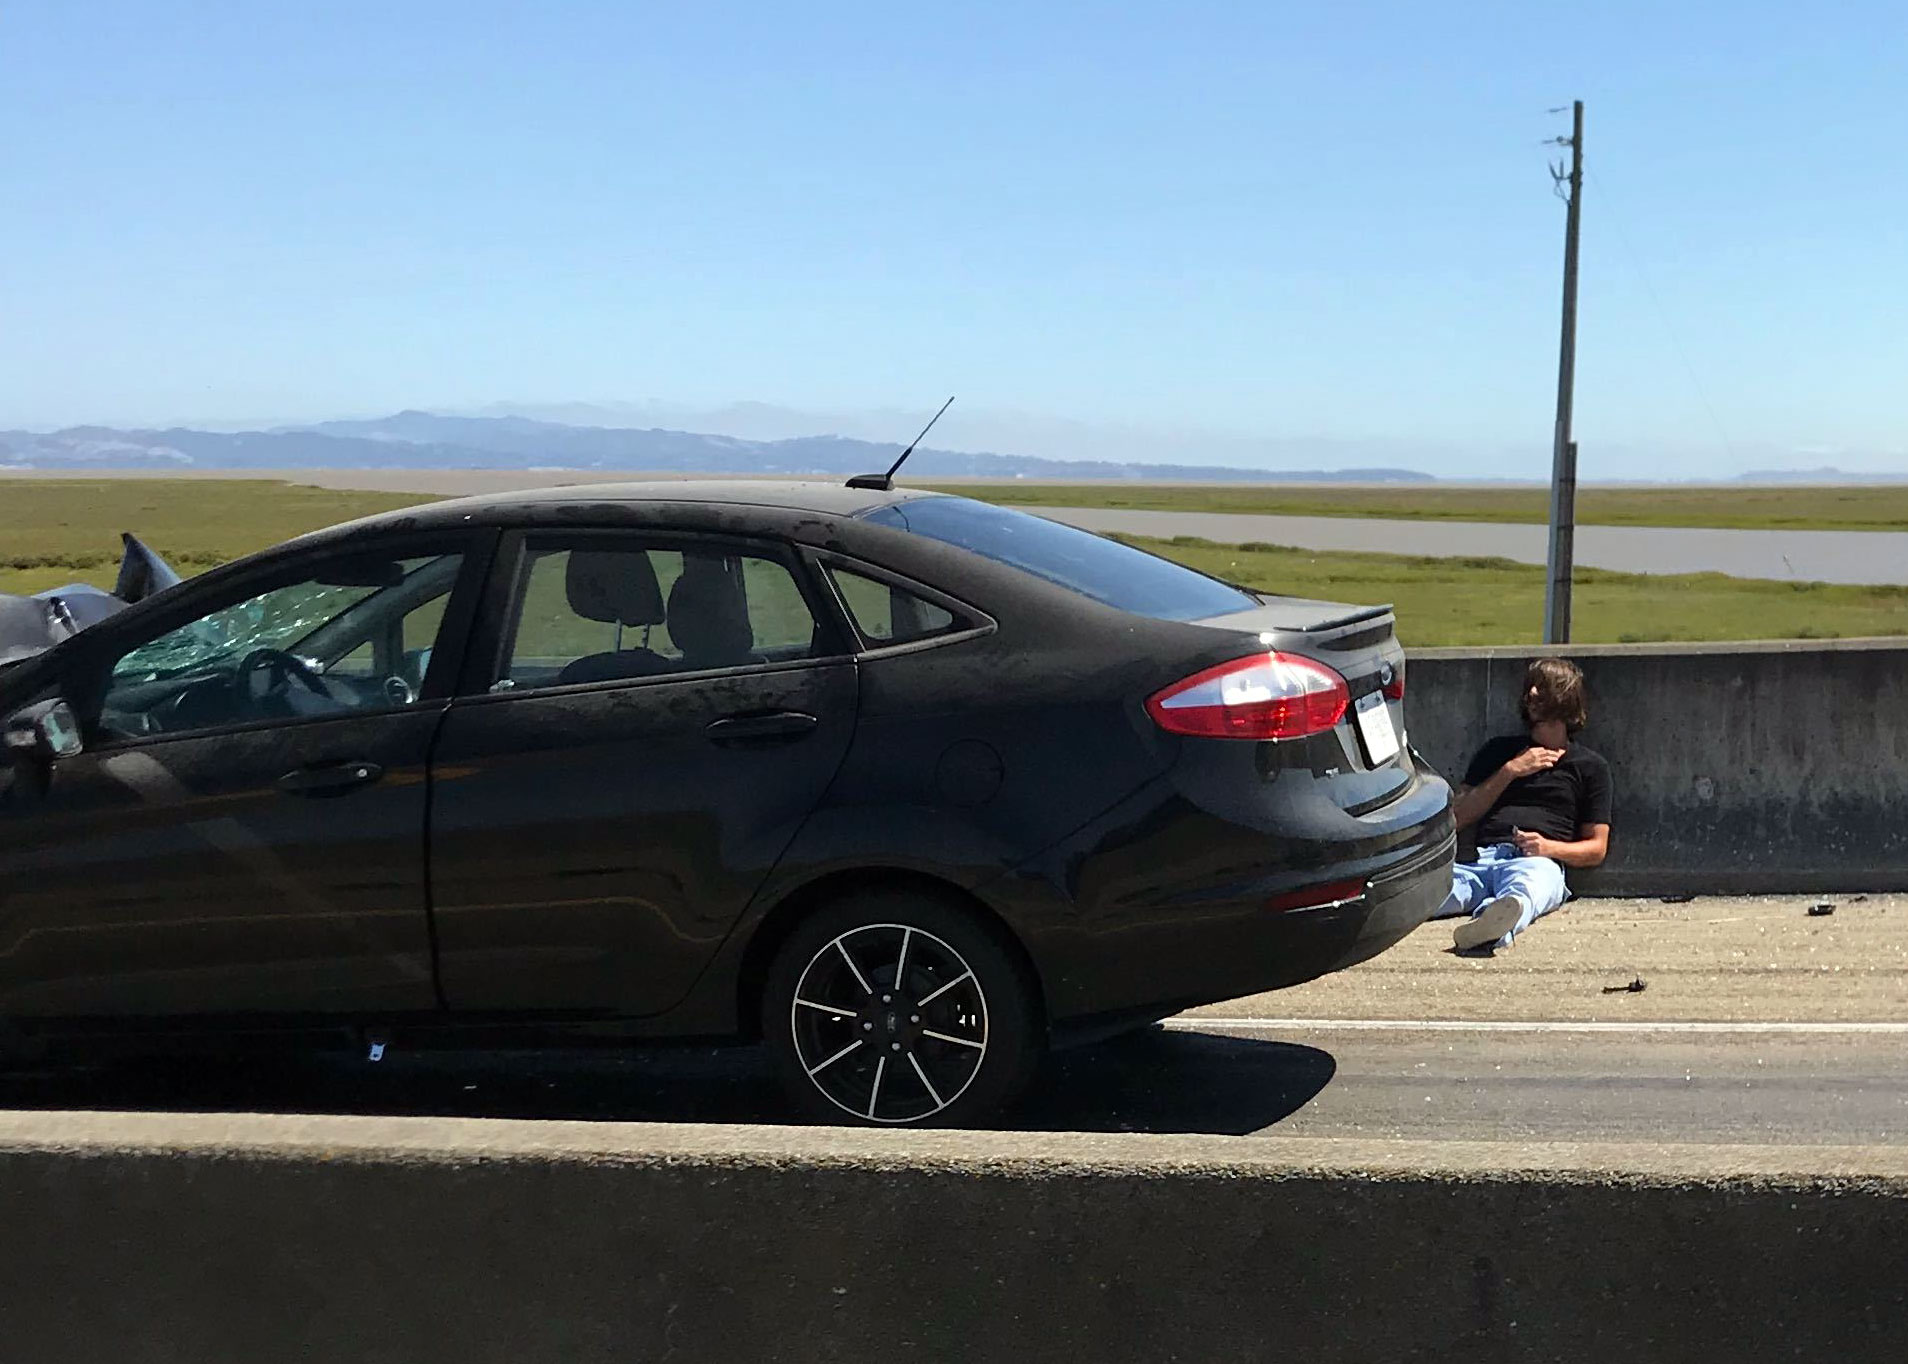 Highway 37 accident – SFBay